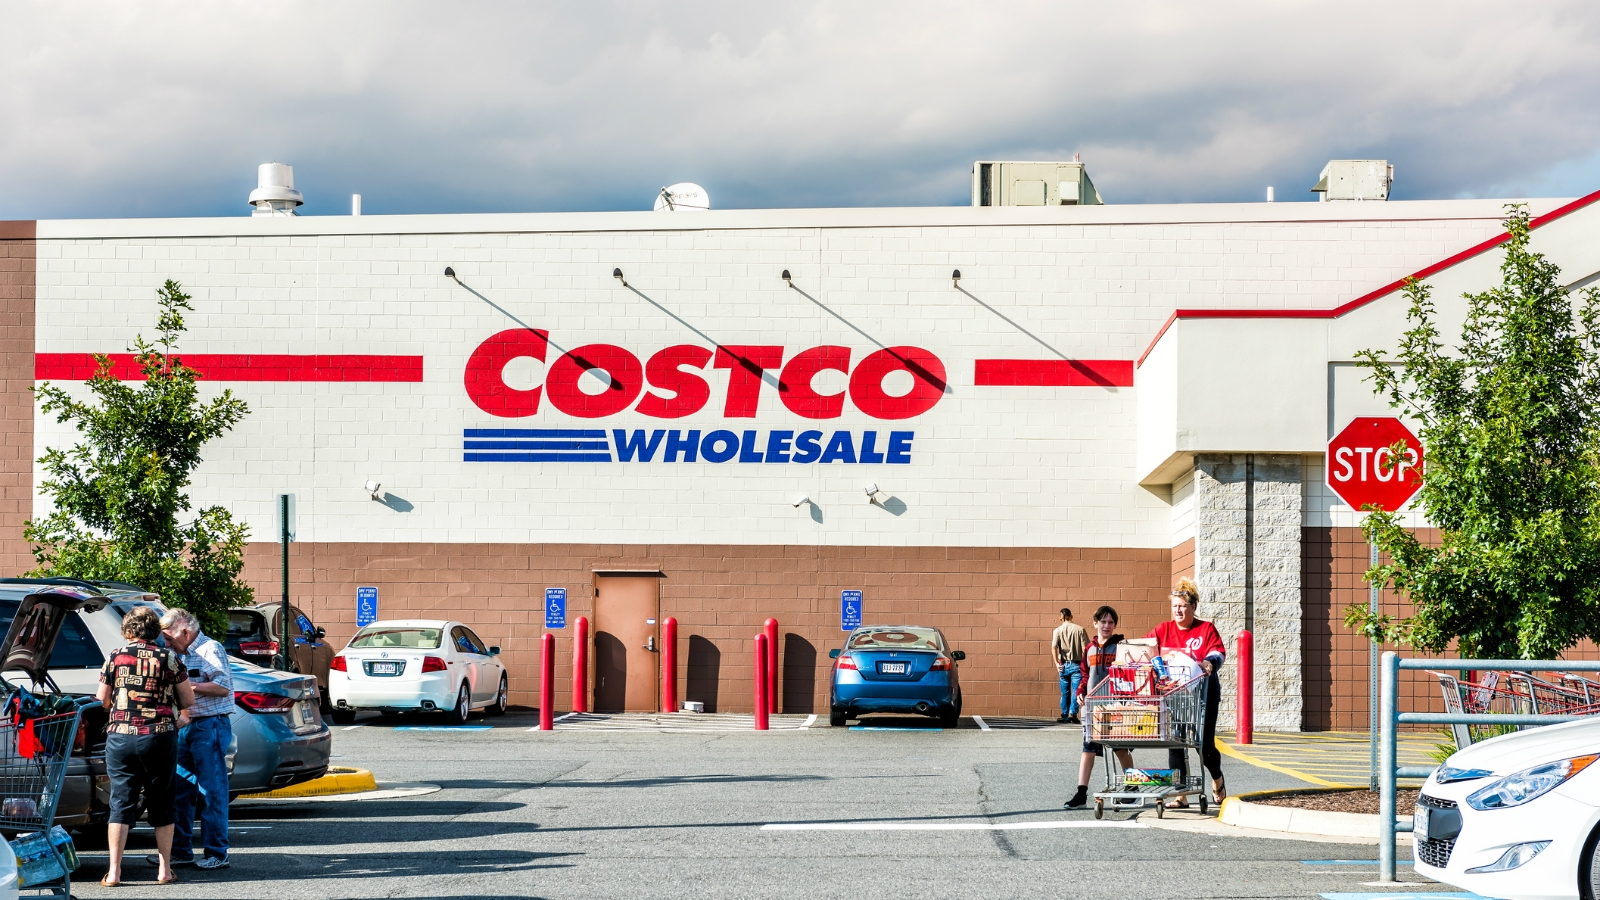 The Best Jewish Food at Costco | The Nosher